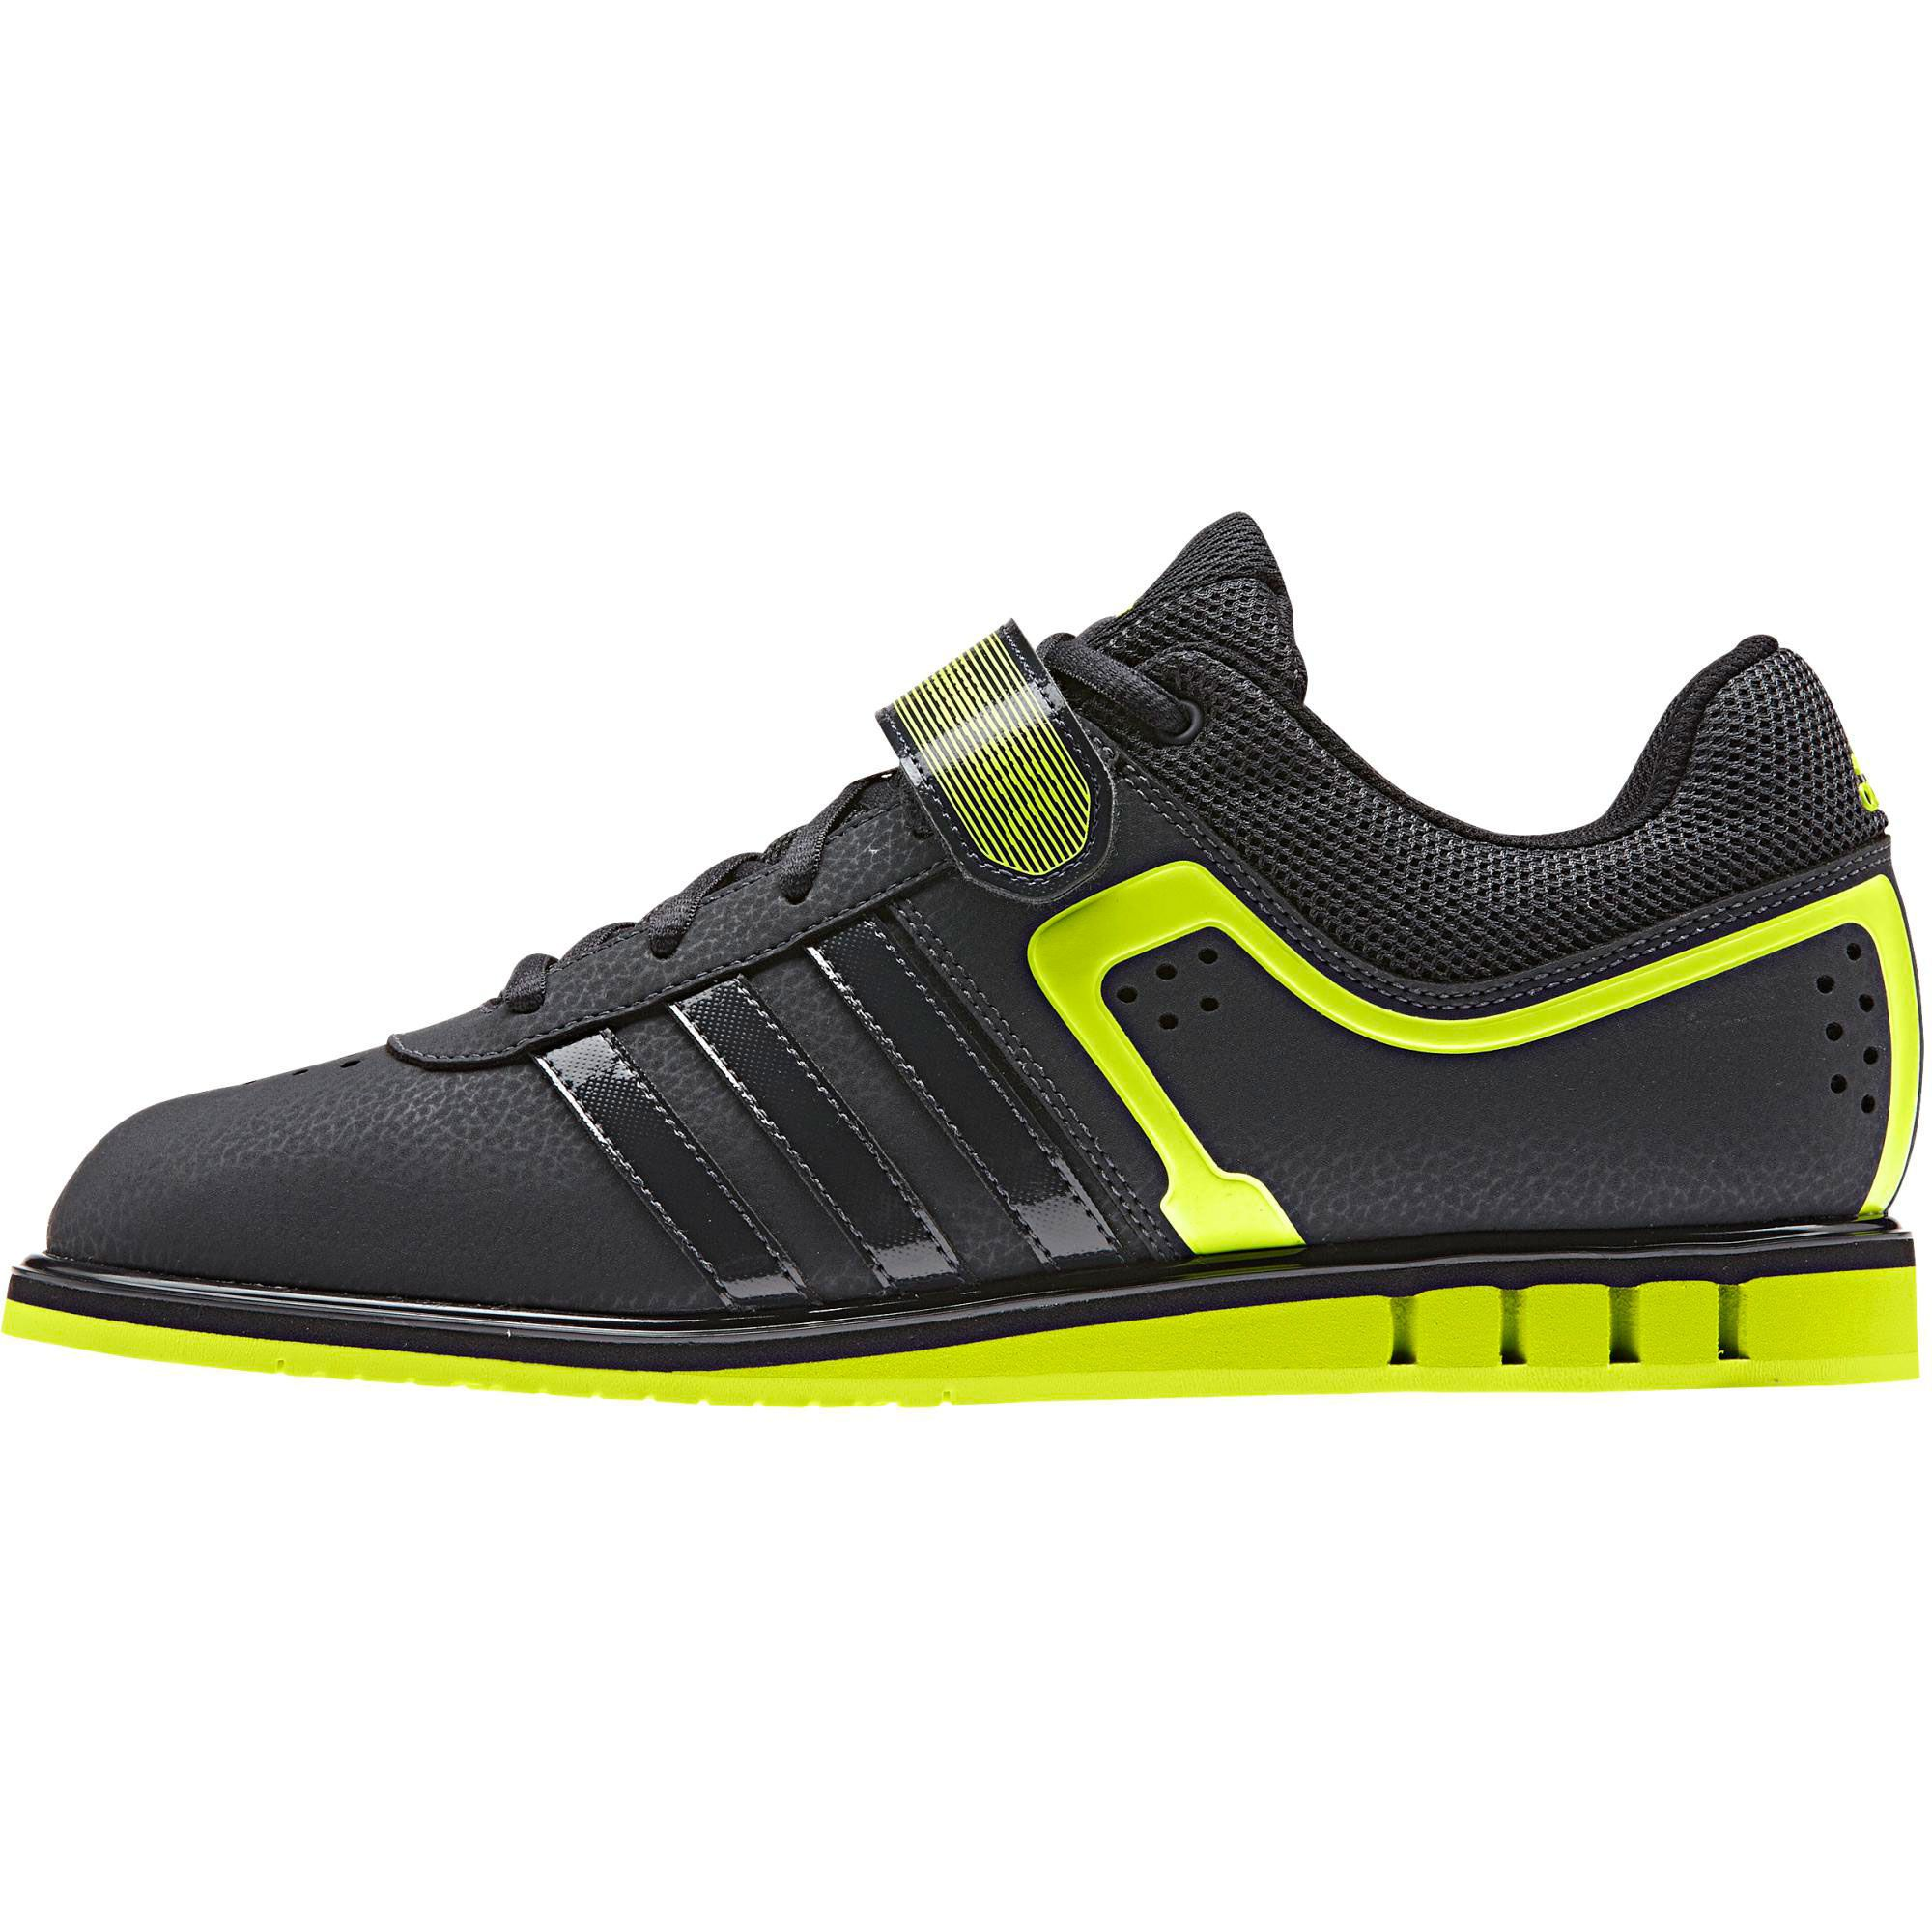 Buy your Adidas Powerlift 2 Weightlifting Shoes - Training Running Shoes  from Wiggle.